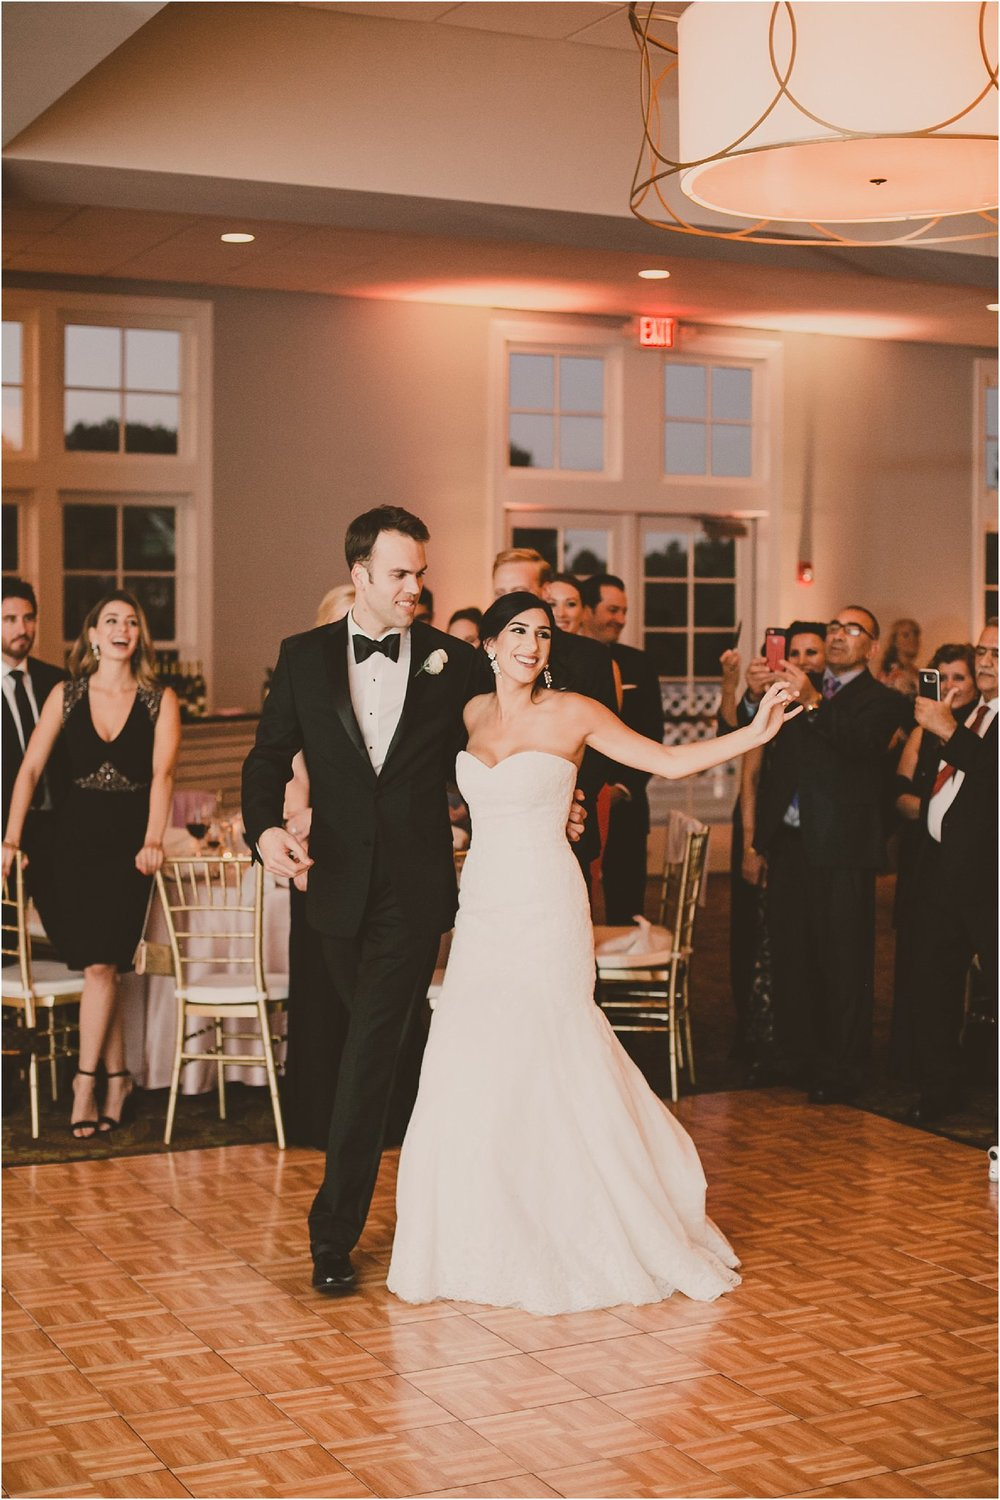 PattengalePhotography_BohoWedding_RichmondVirginia_Photographer_SevenSprings_Manor_Estate_Wedding_Mariam&Jay_Elegant_Fall_Bohemian_blush_gold_persian_glam_glamorous__0103.jpg